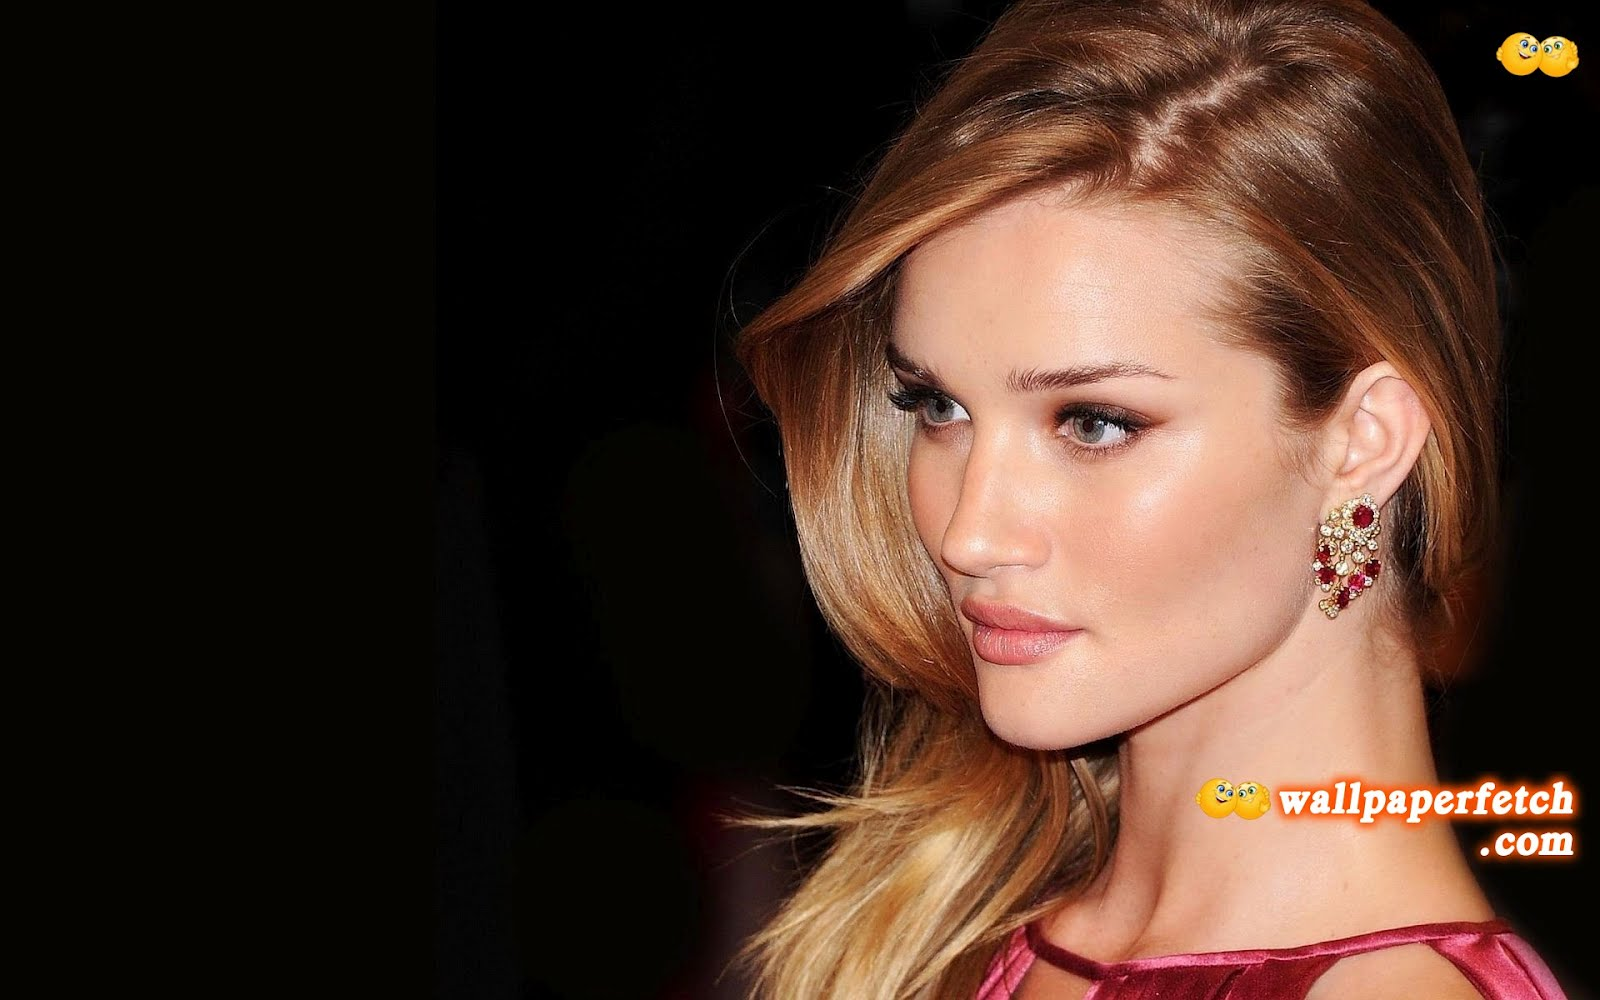 Wallpaper Fetch Rosie Huntington Whiteley Wallpapers